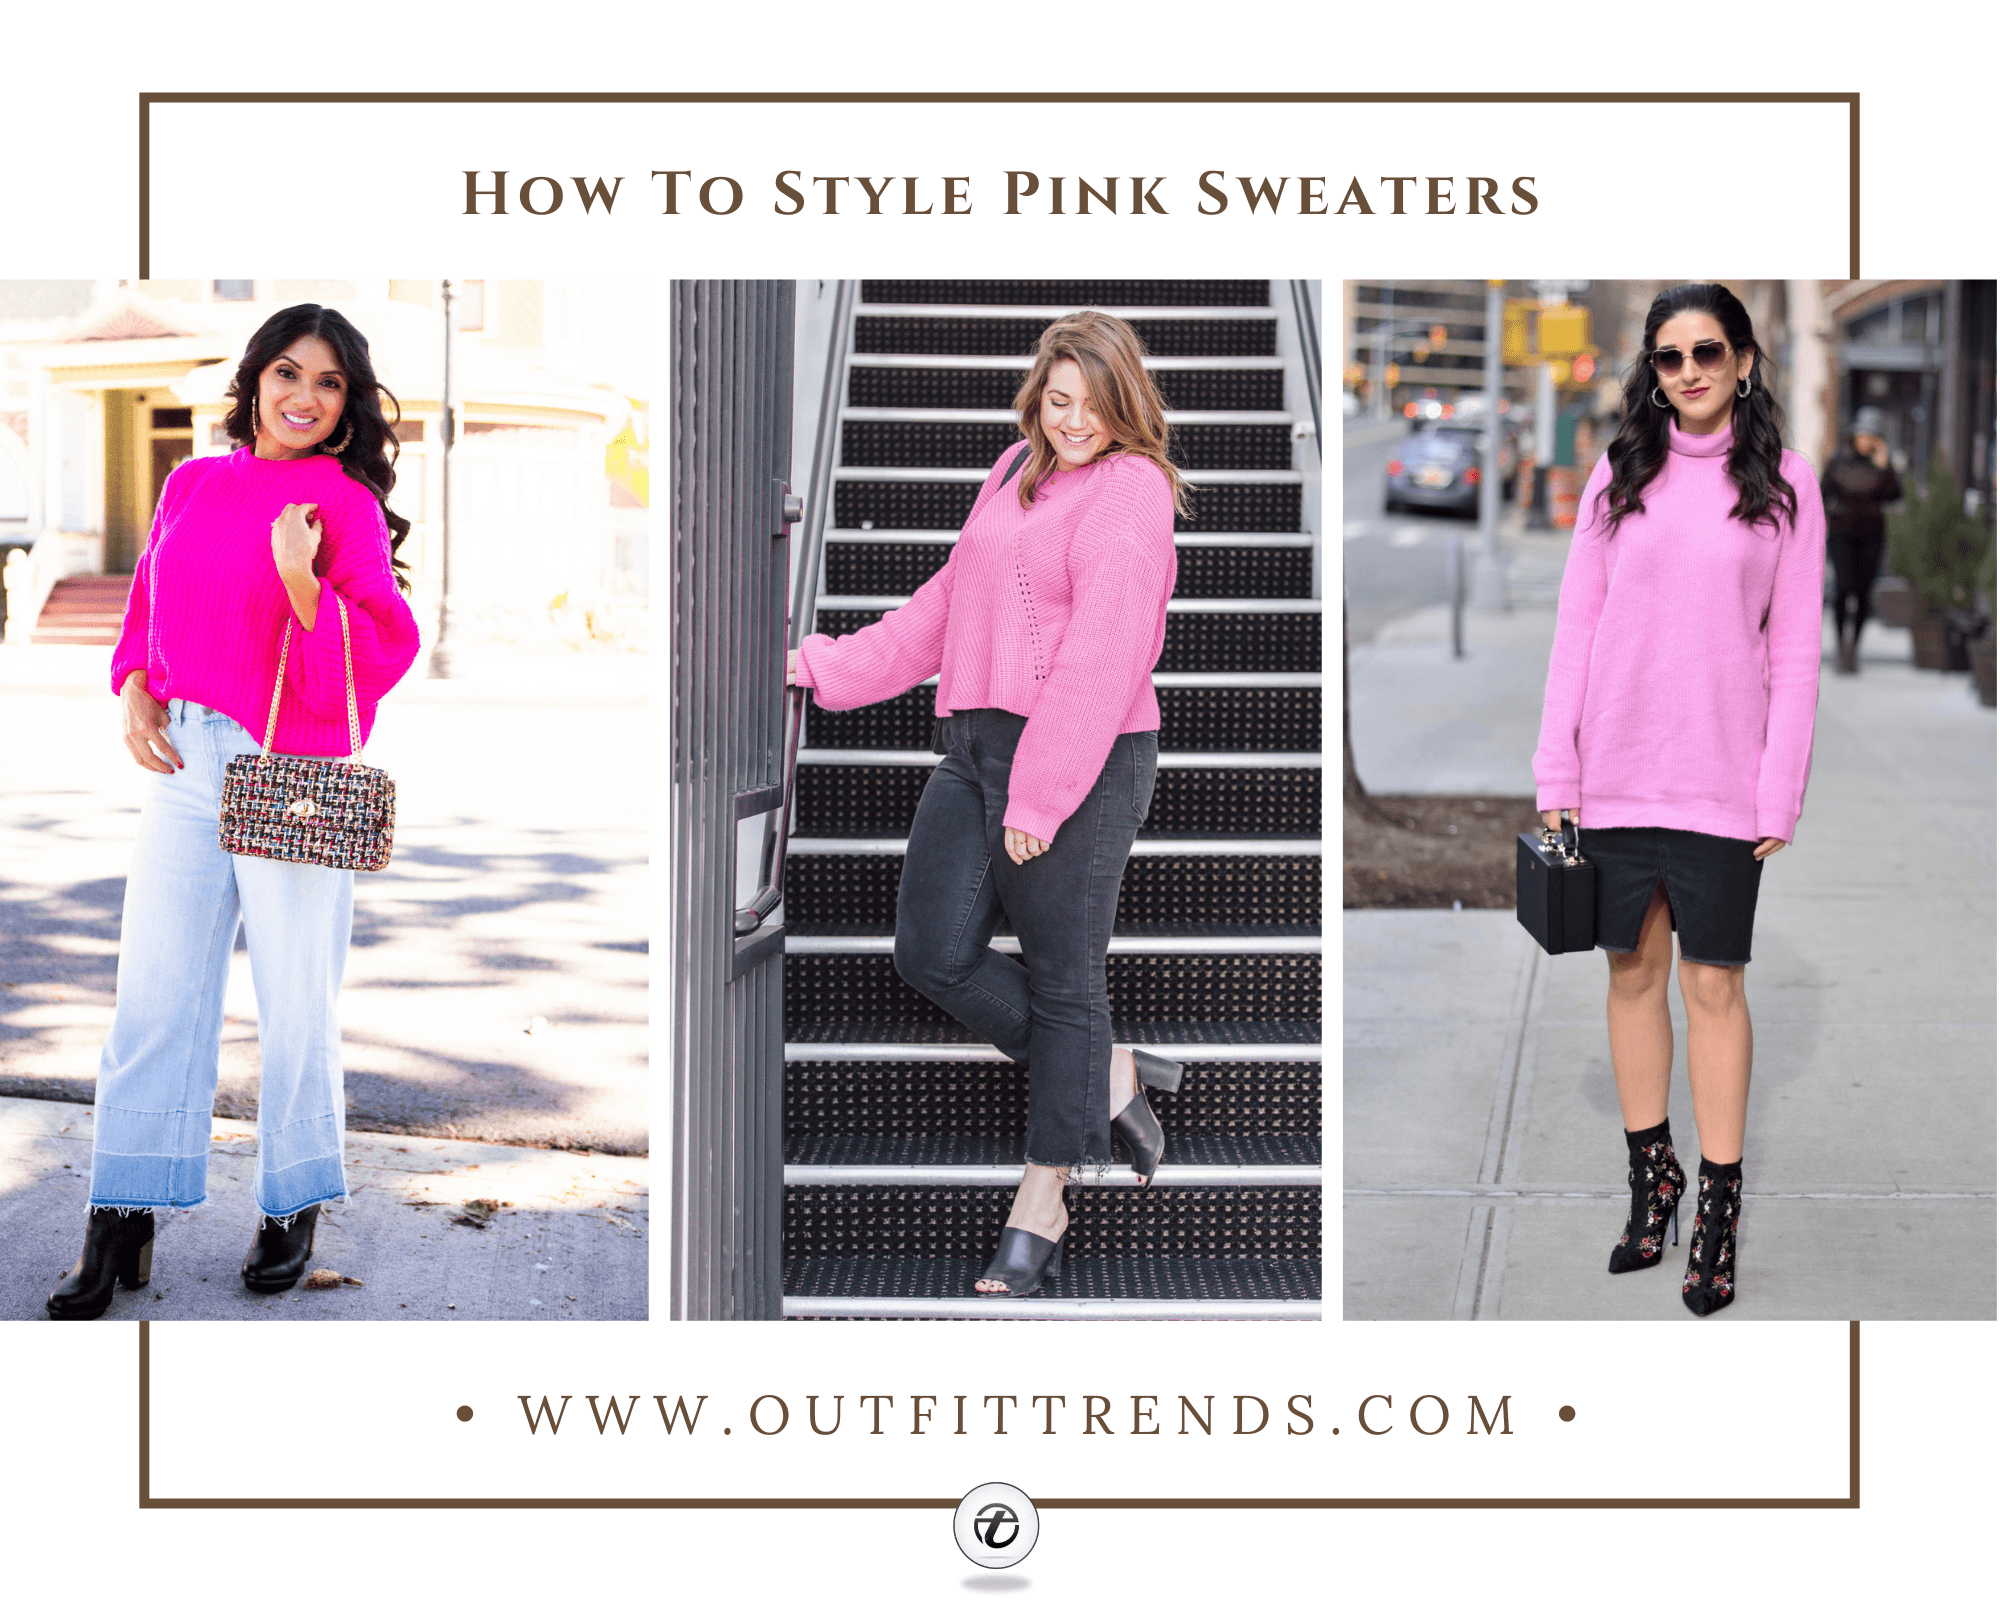 Outfit with Pink Sweater | 20 Ways to Style Pink Sweaters